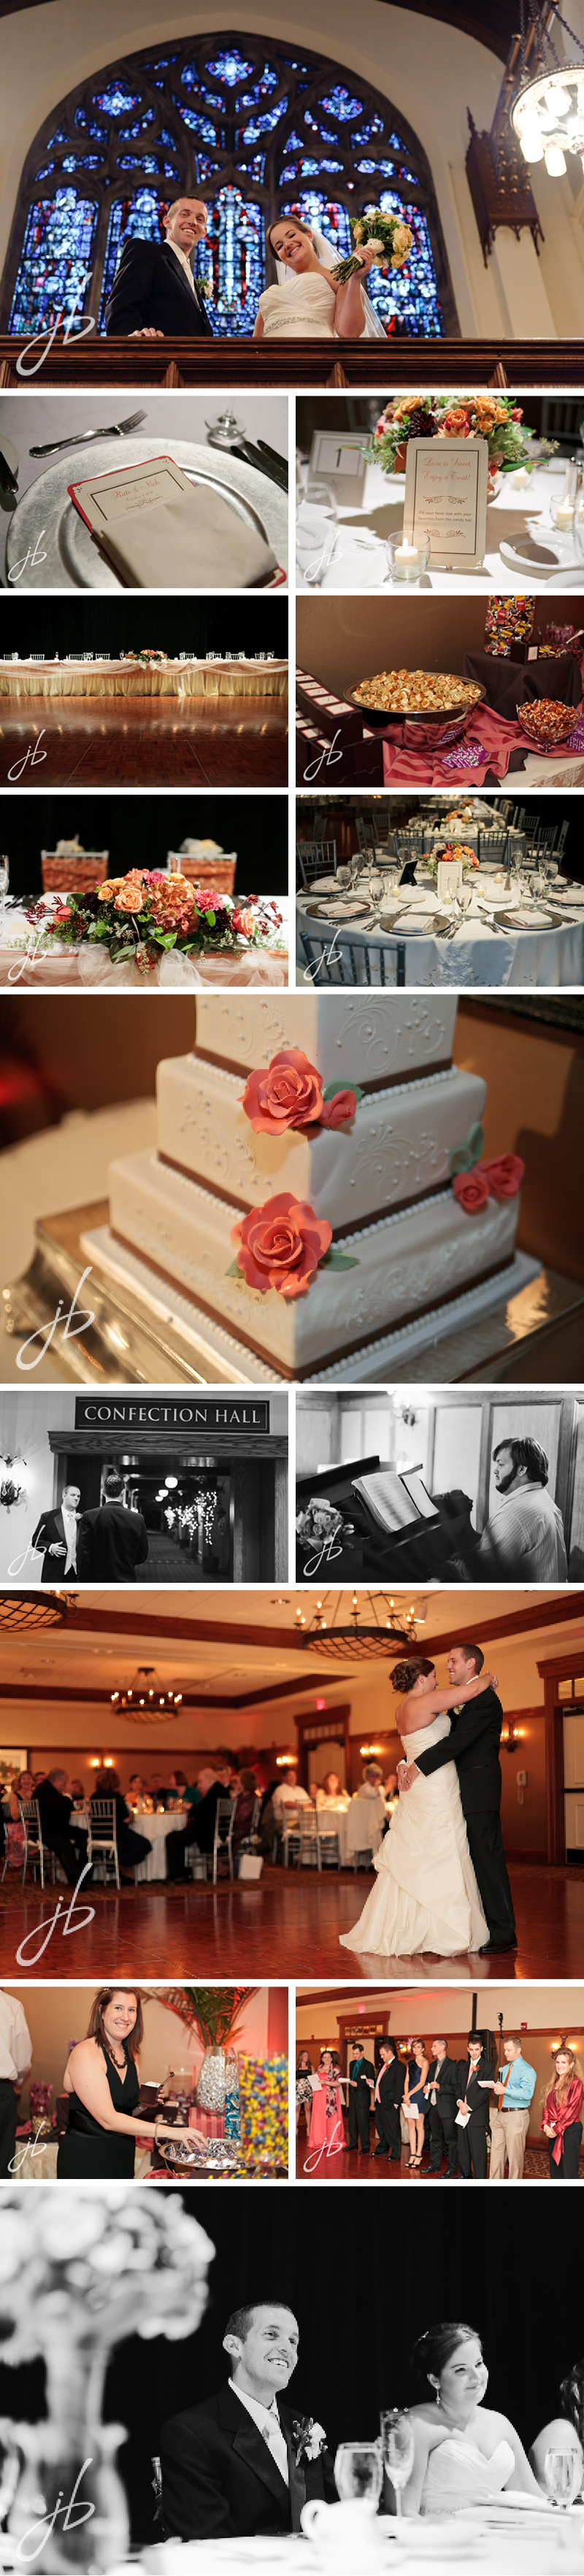 Harrisburg wedding photography by Jeremy Bischoff Photography